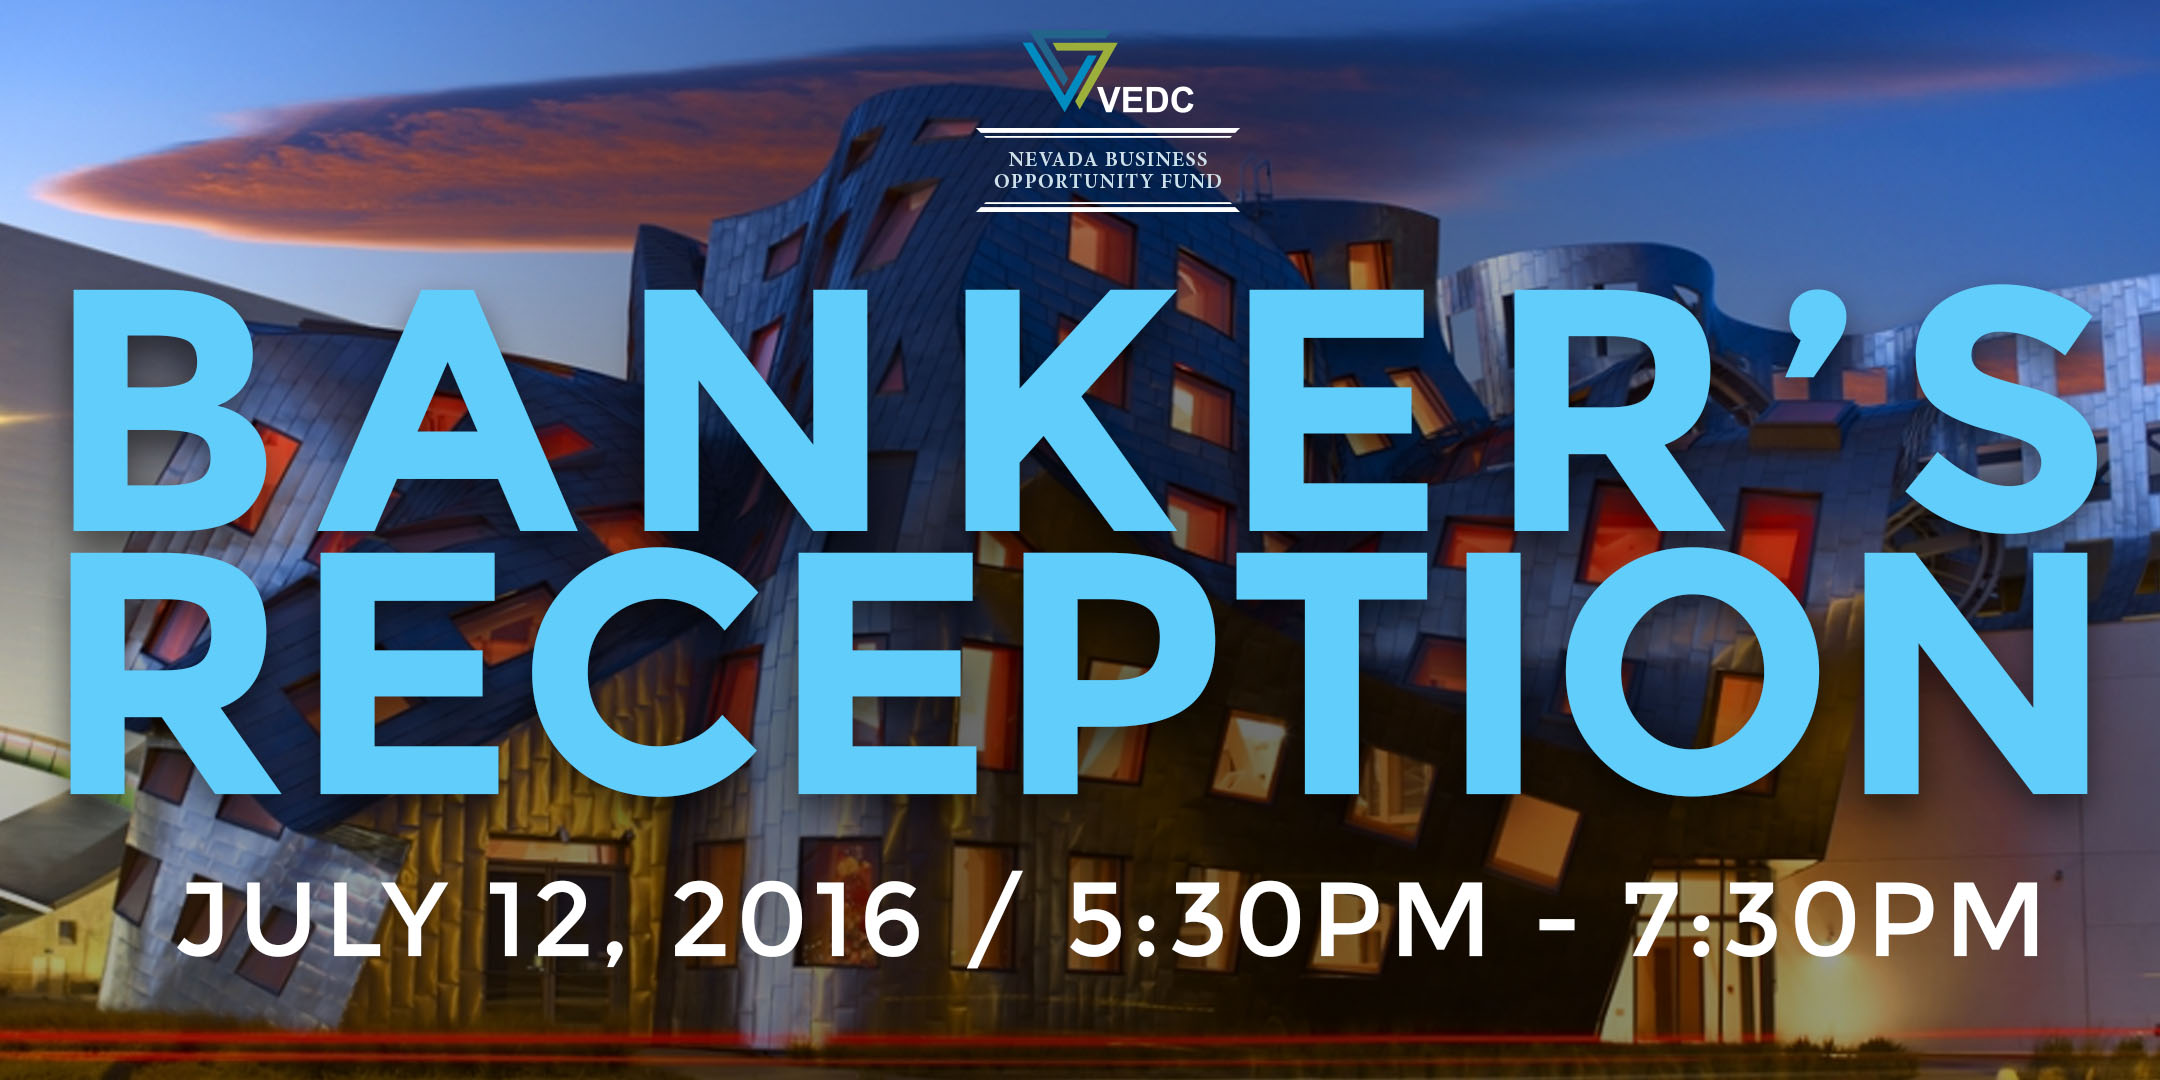 Special Banker's Reception at the William Carr Gallery! July 12th, from 5:30PM to 7:30PM!